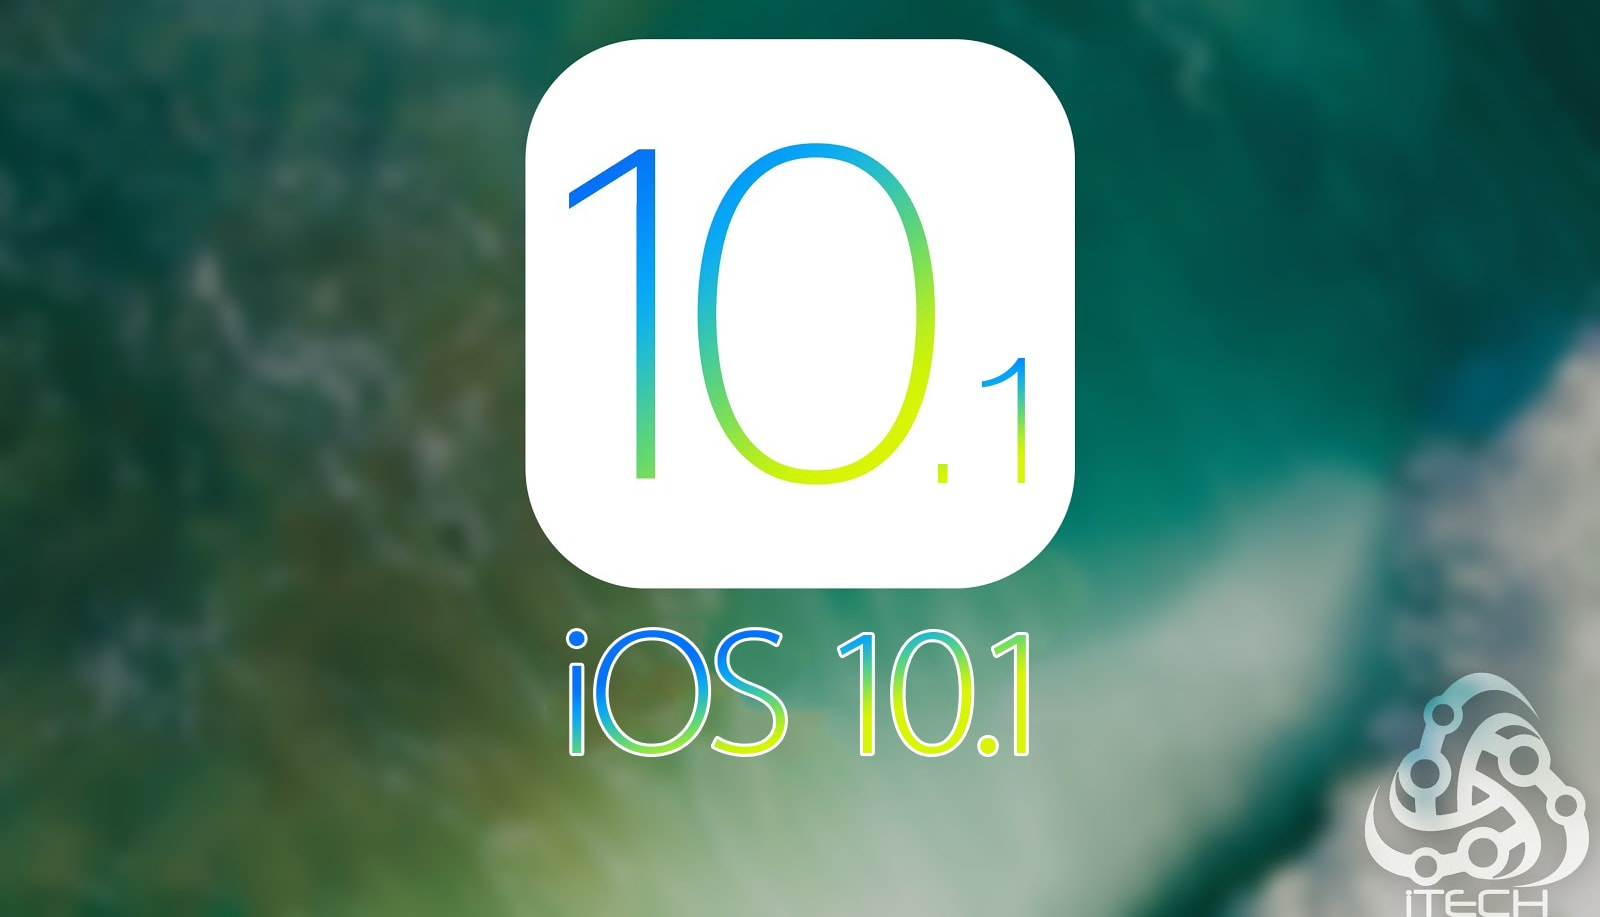 iOS 10.1 released to the public